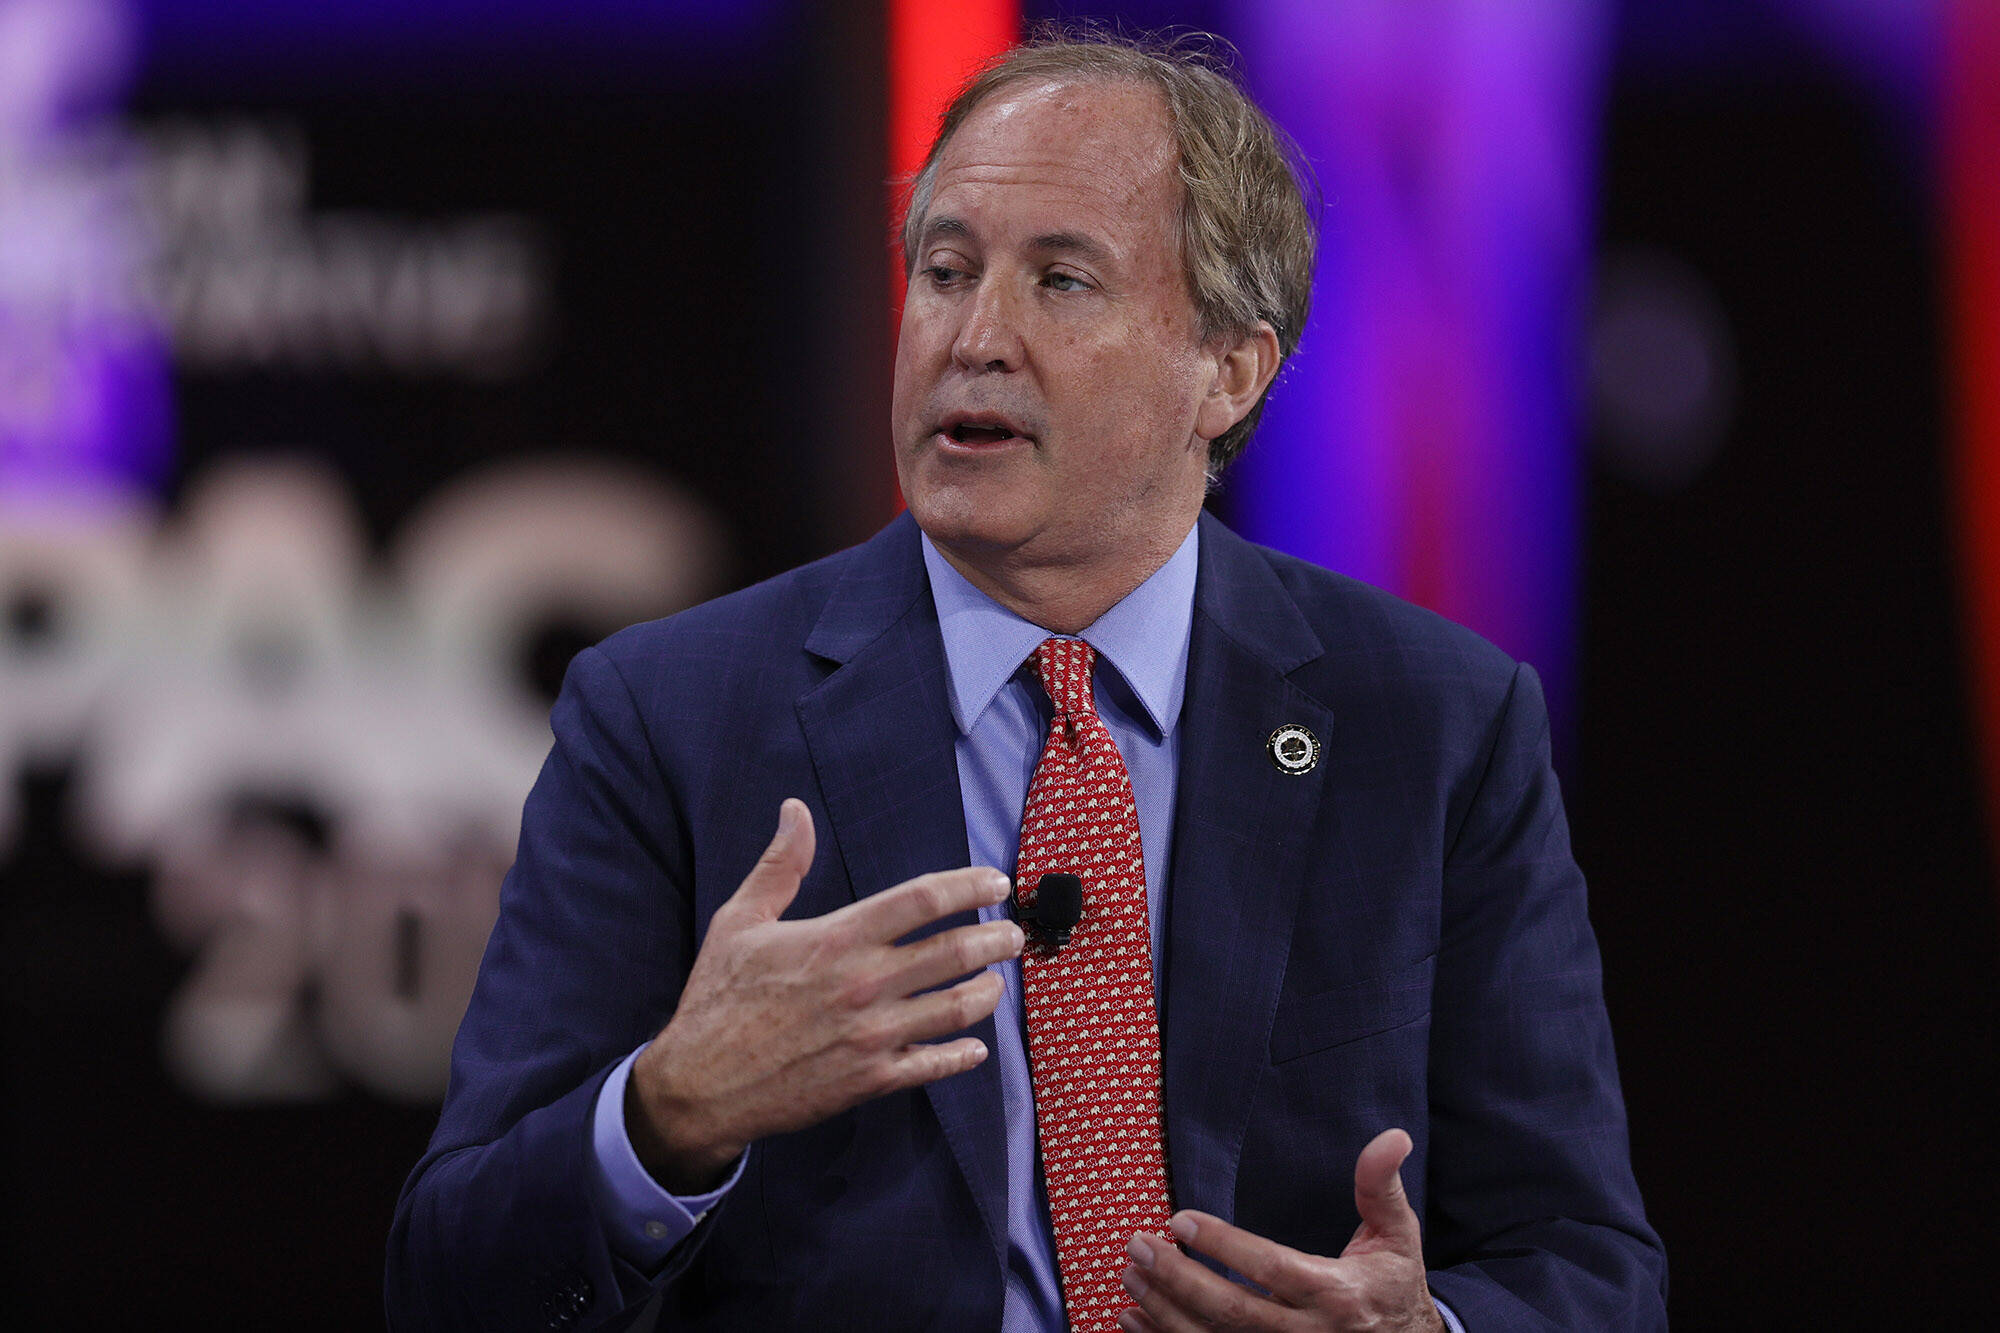 Texas attorney general says state's abortion ban is 'stimulating' interstate commerce